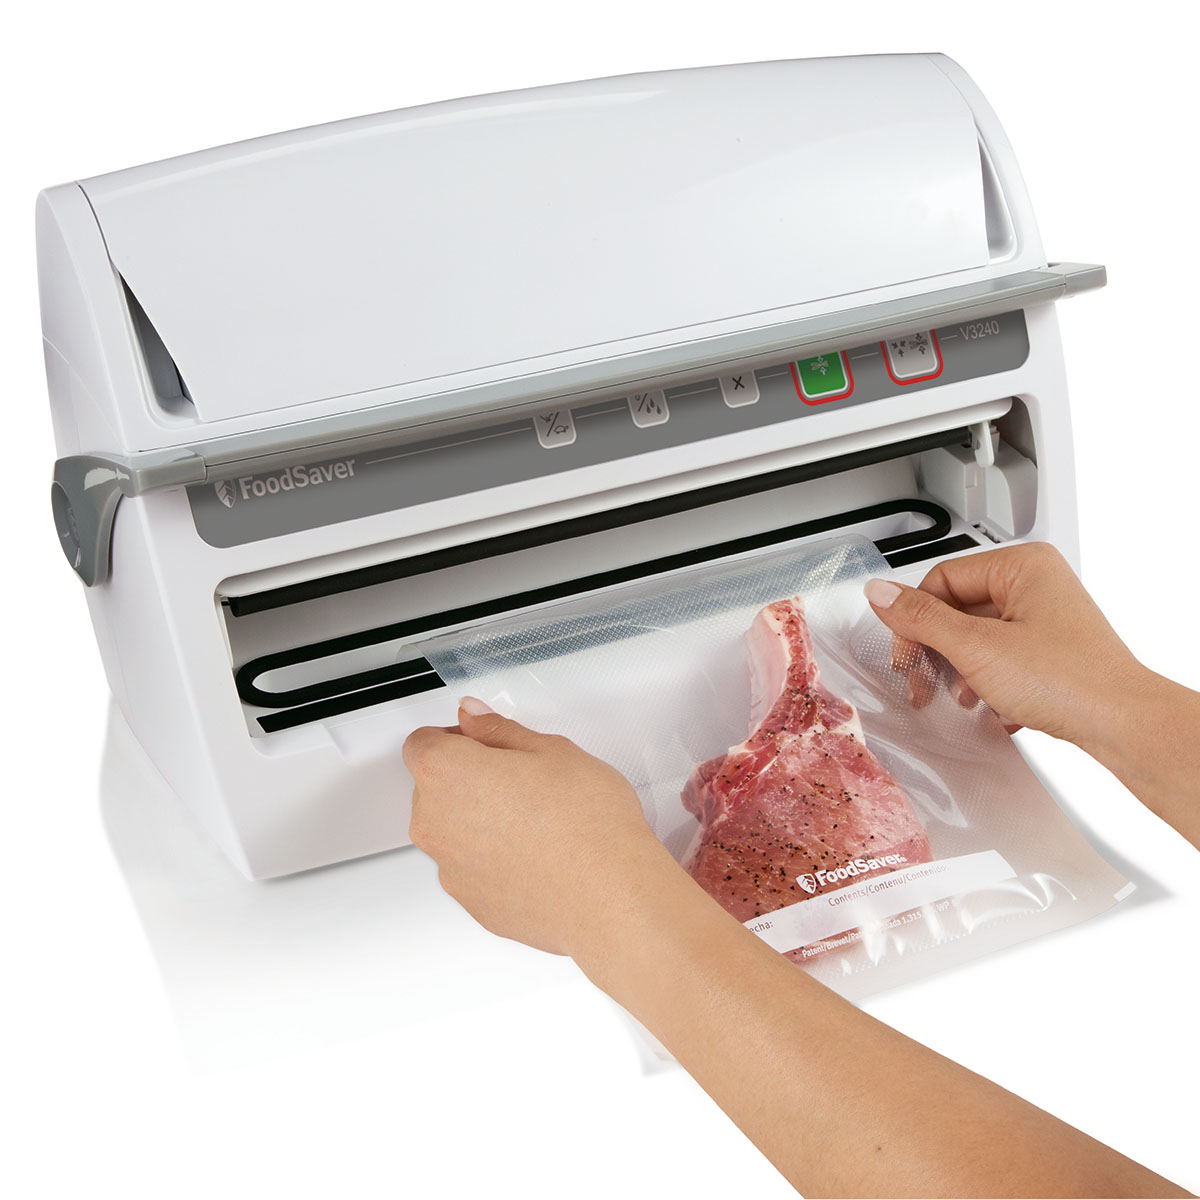 foodsaver v3240 vacuum sealer - Vacuum Food Sealer